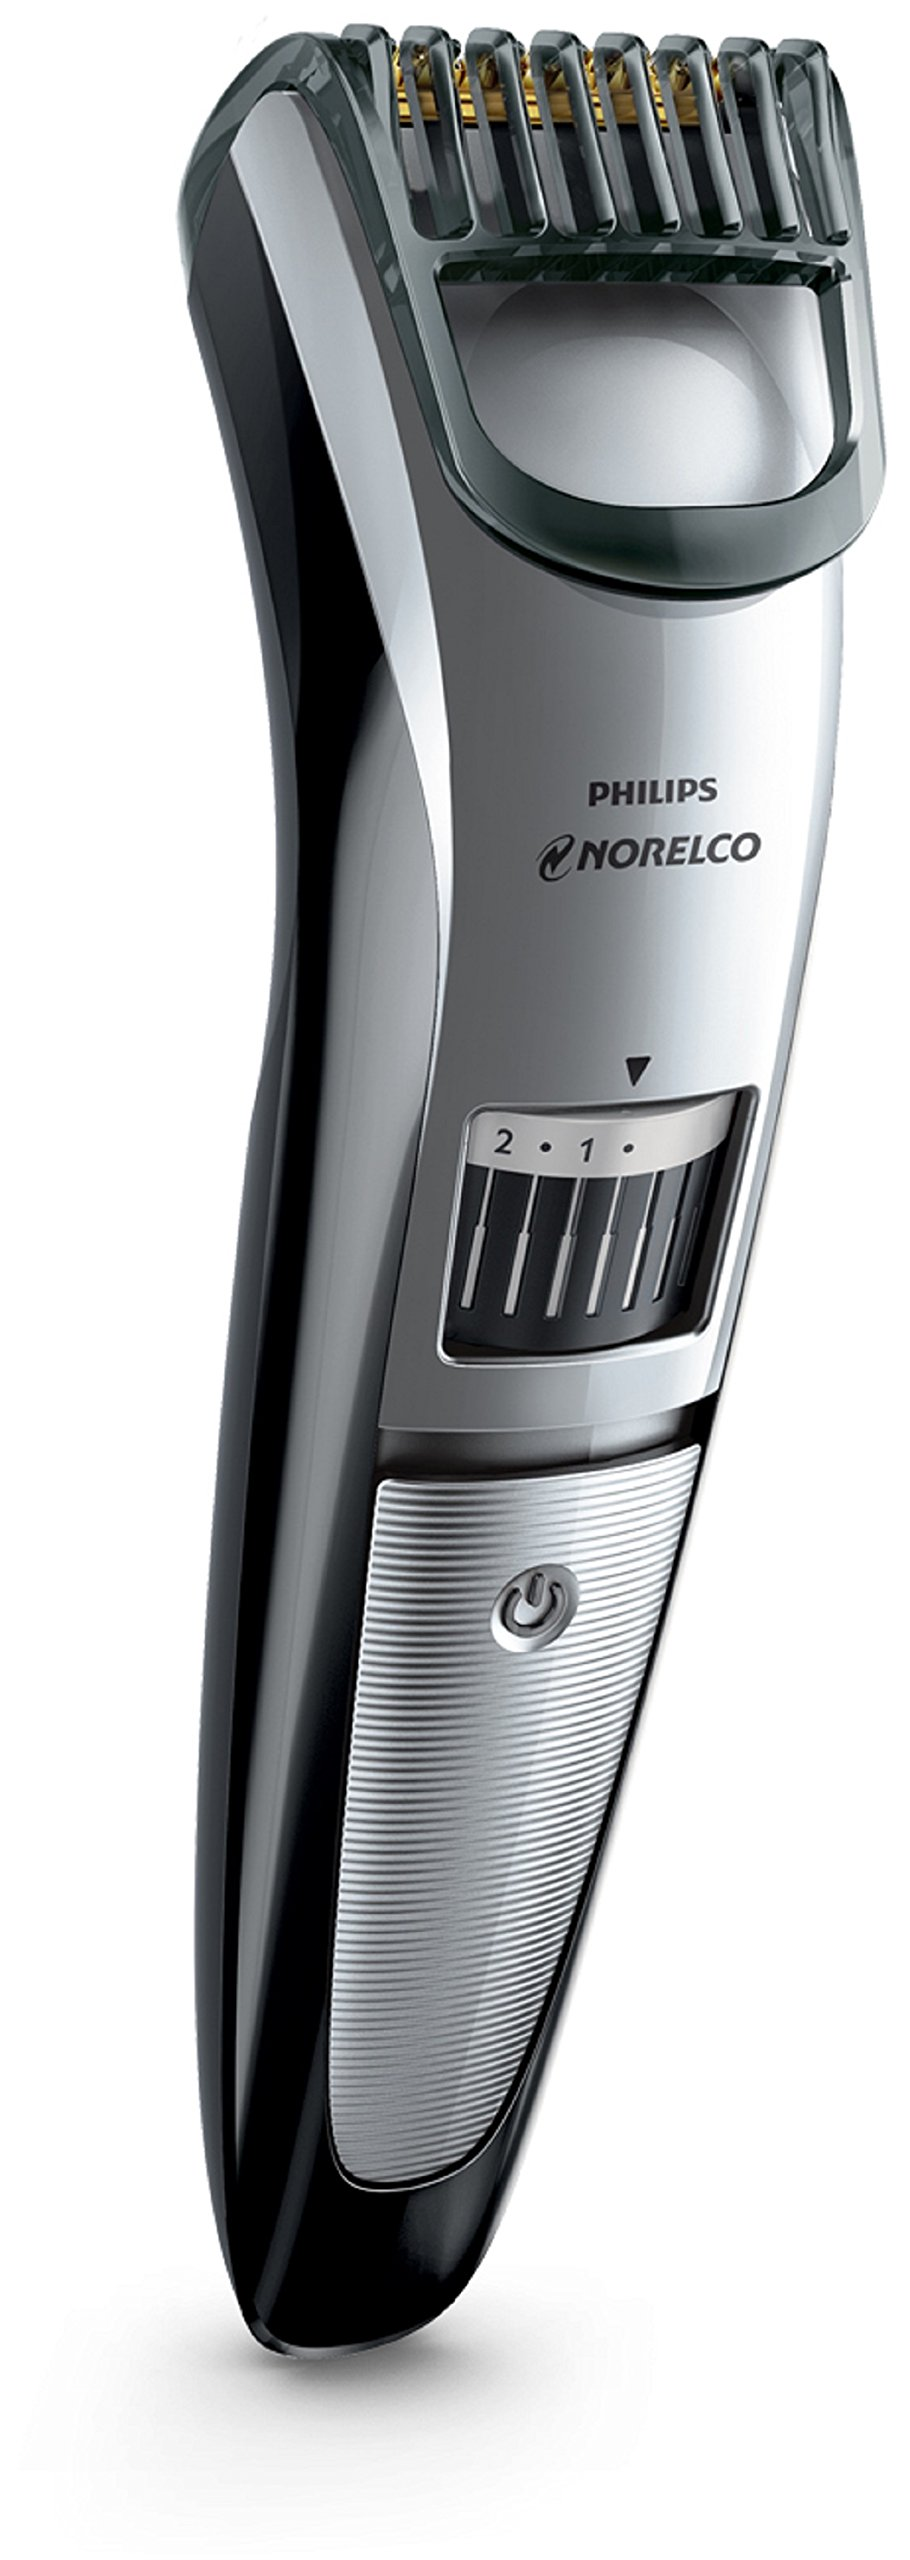 Philips Norelco Beard trimmer Series 3500, 20 built-in length settings, QT4018/49